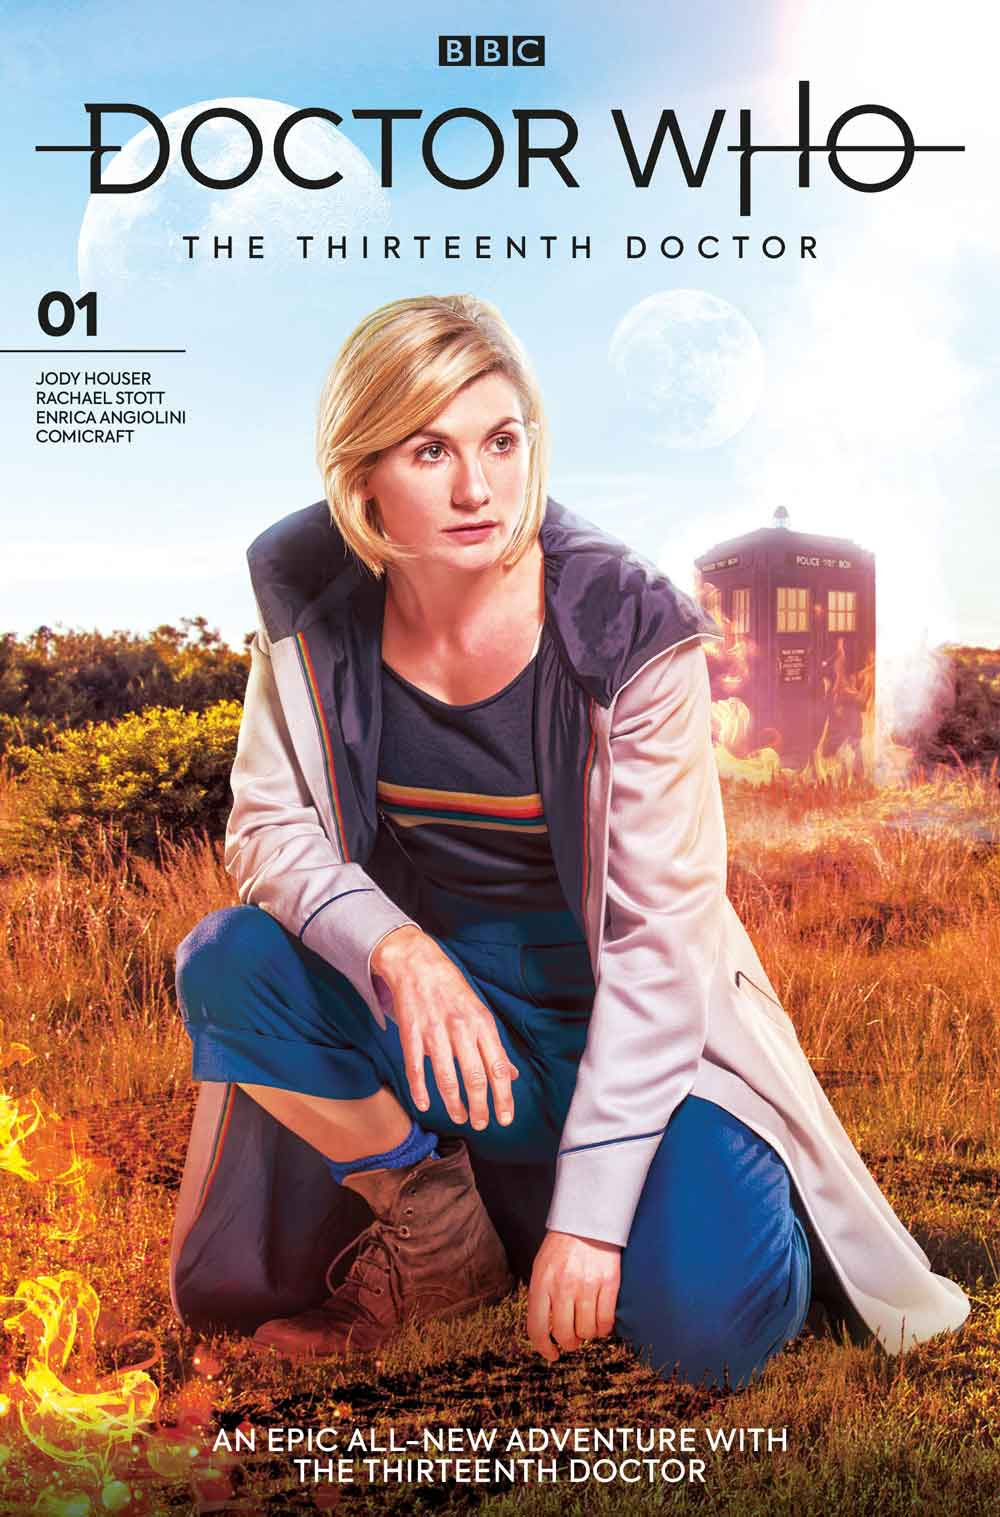 Titan, BBC & Doctor Who The Thirteenth Doctor #1 Spoilers